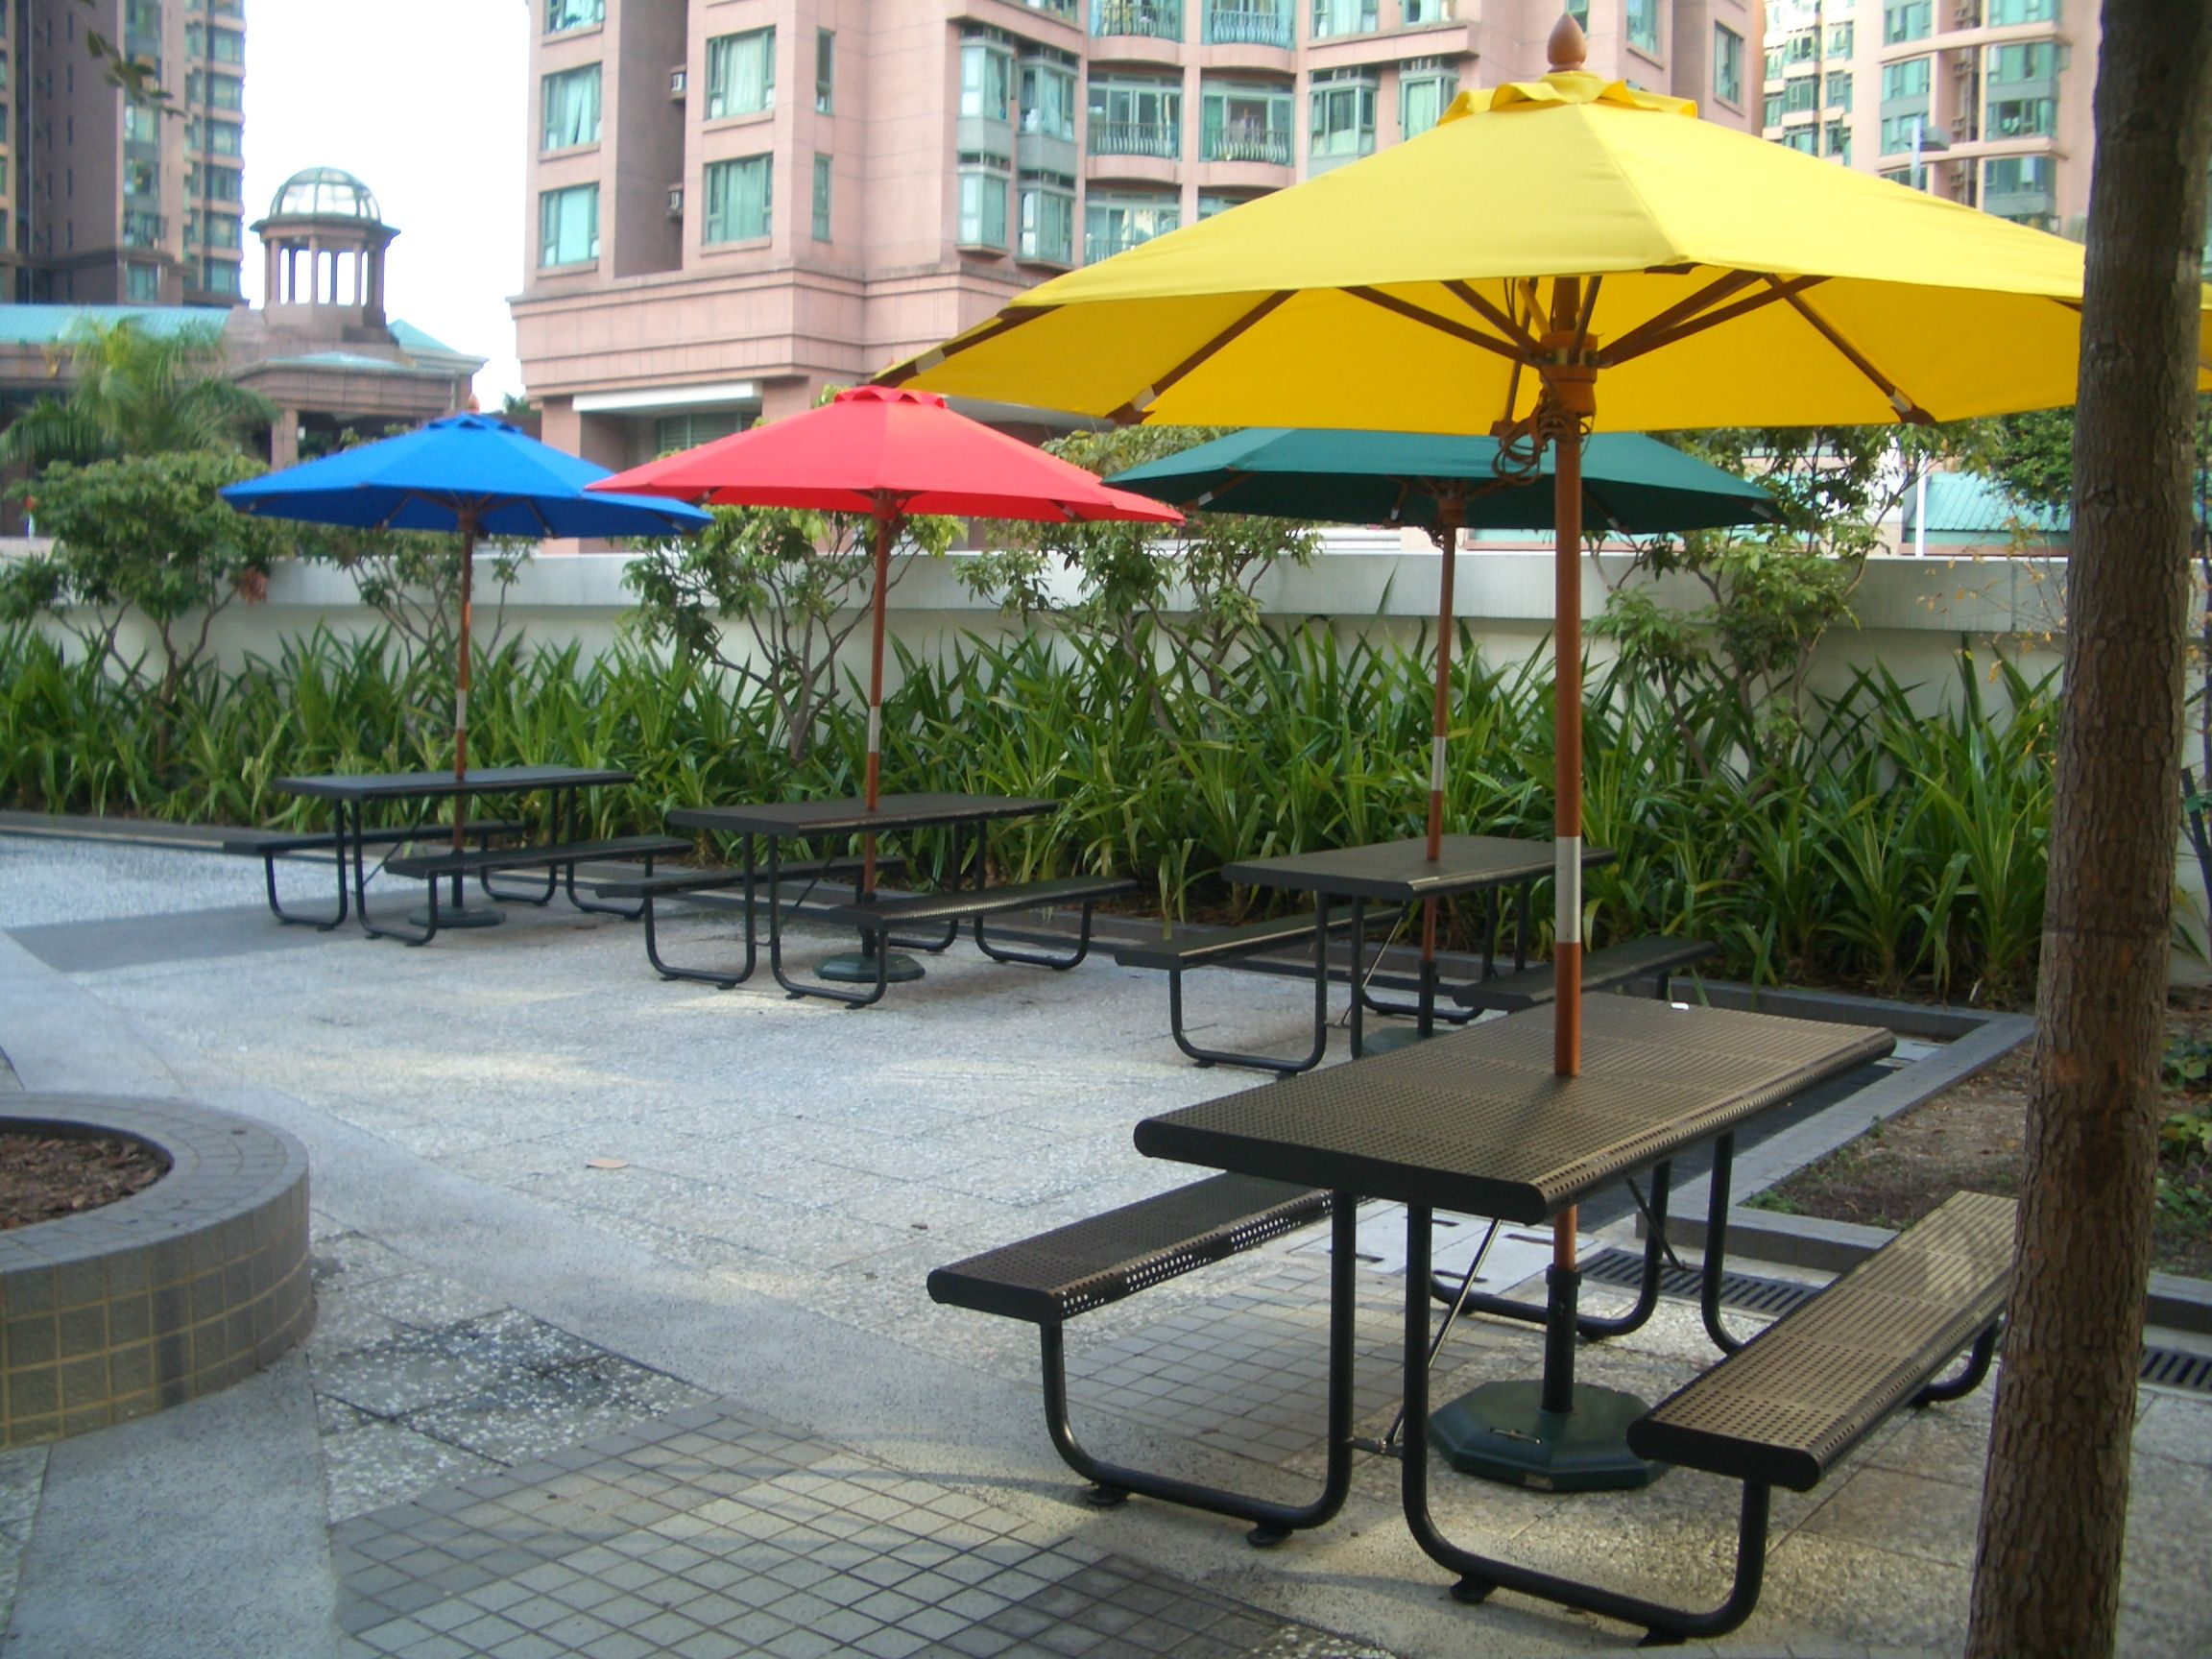 Picnic Table And Benches With Umbrella OUTDOOR PICNIC TABLE - Metal picnic table with umbrella